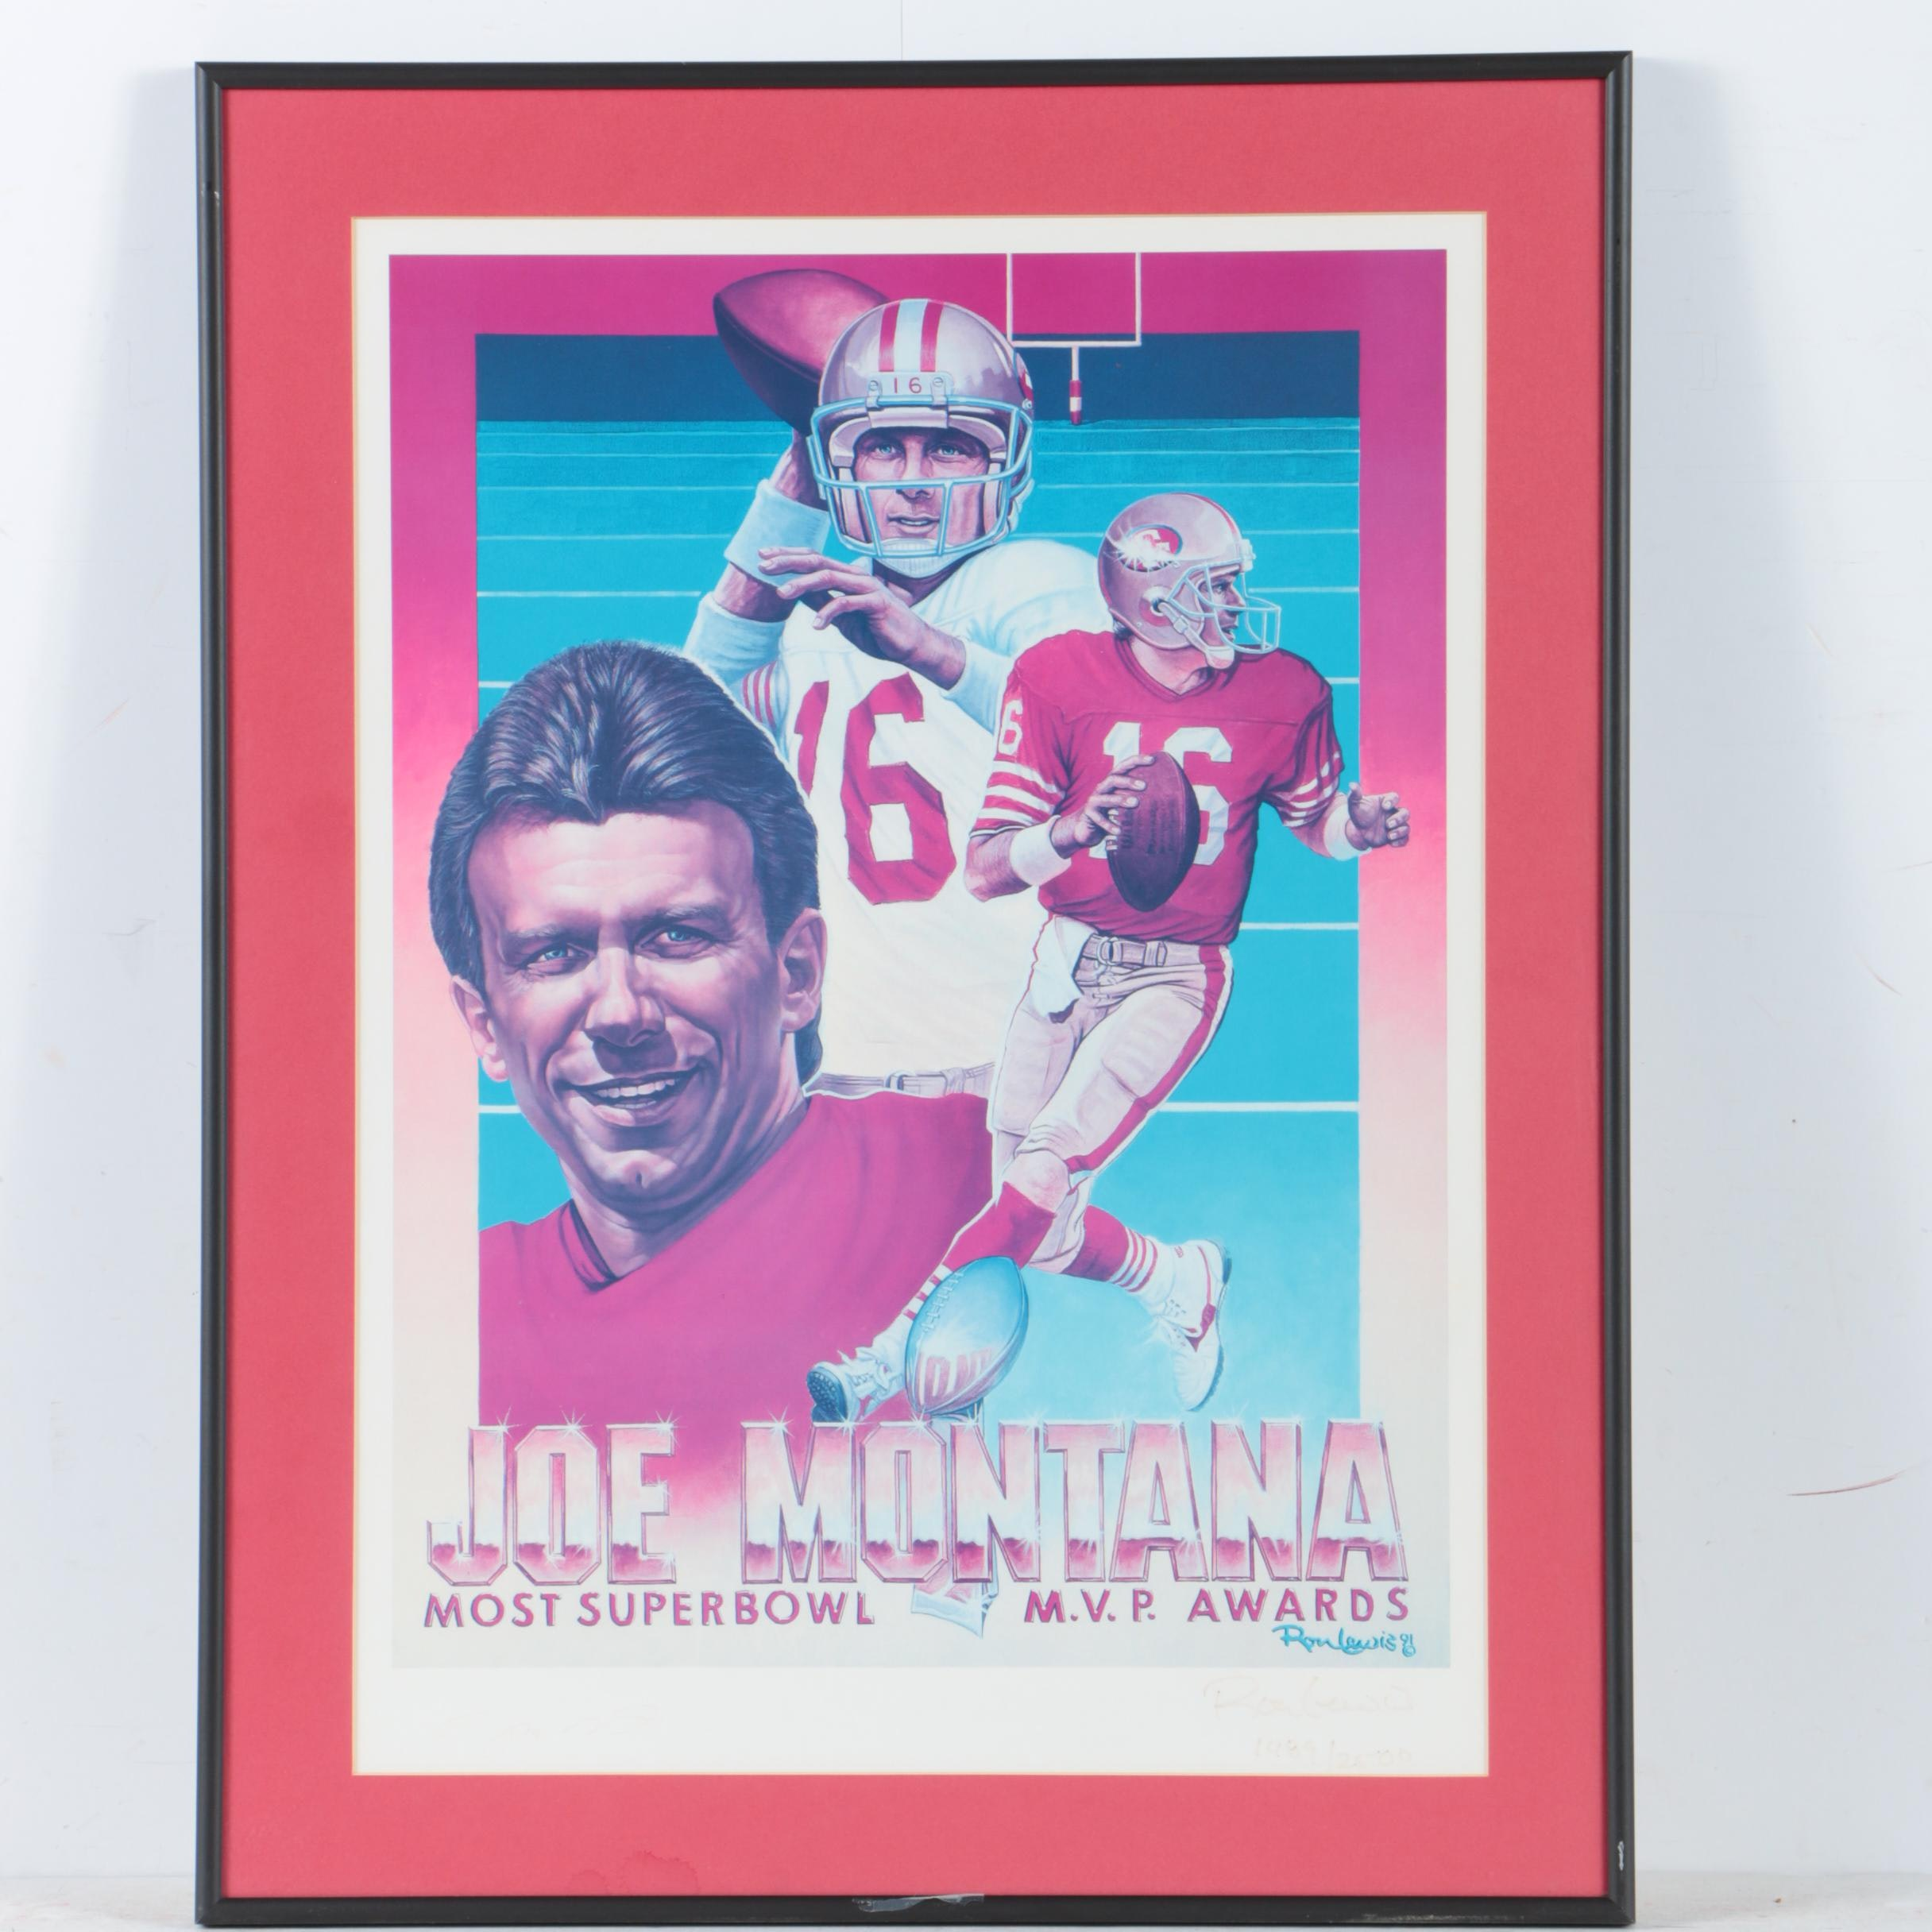 Joe Montana Autographed Limited Edition Offset Lithograph Poster on Paper